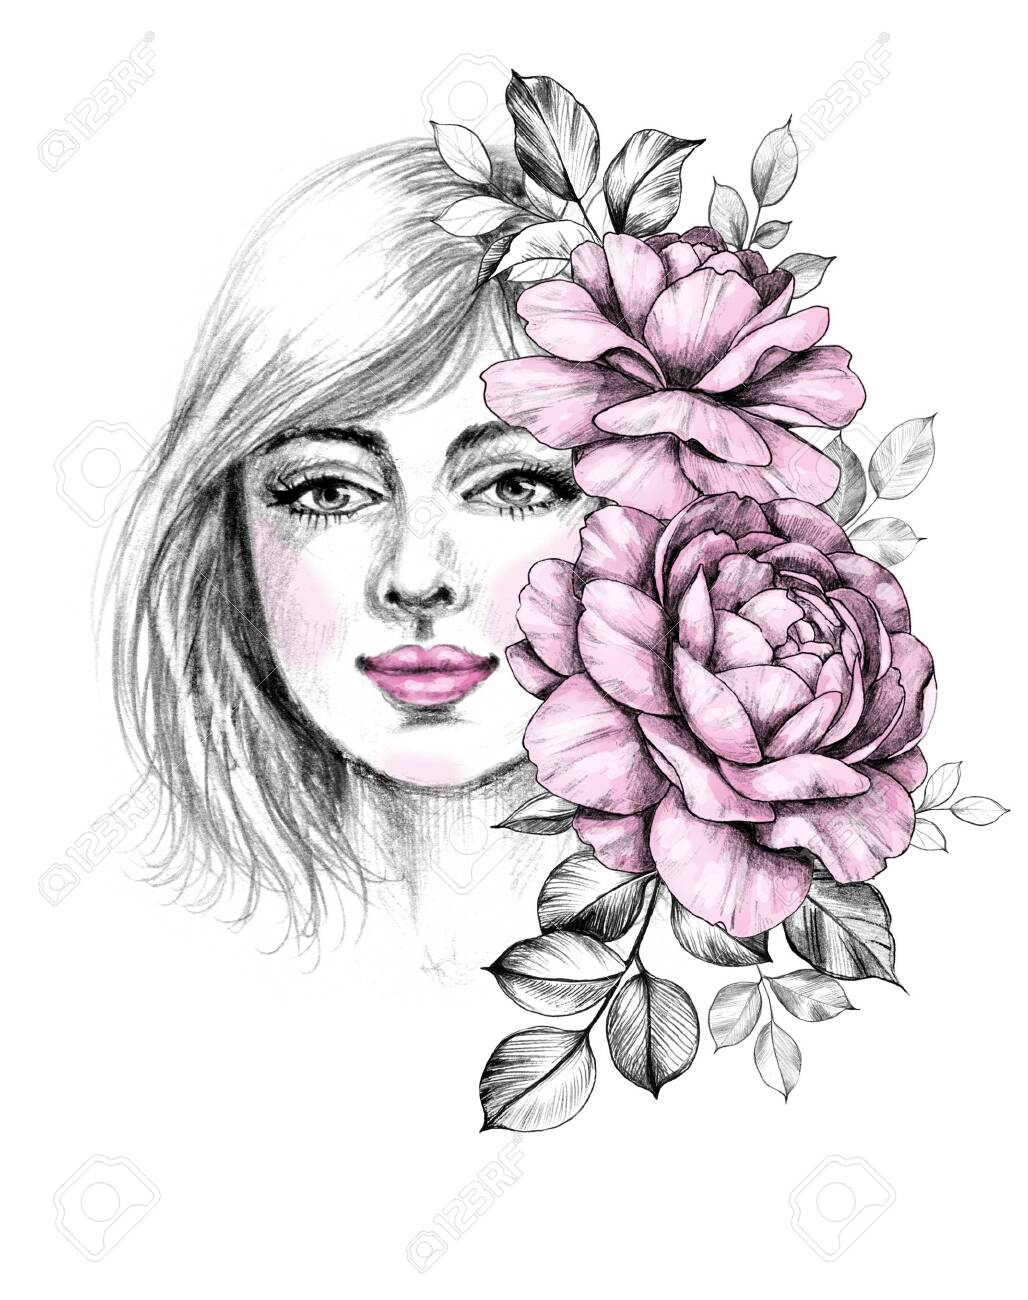 Girl With Flower Head Drawing : flower, drawing, Drawn, Beautiful, Young, Woman, Roses, Bunch.., Stock, Photo,, Picture, Royalty, Image., Image, 133927996.